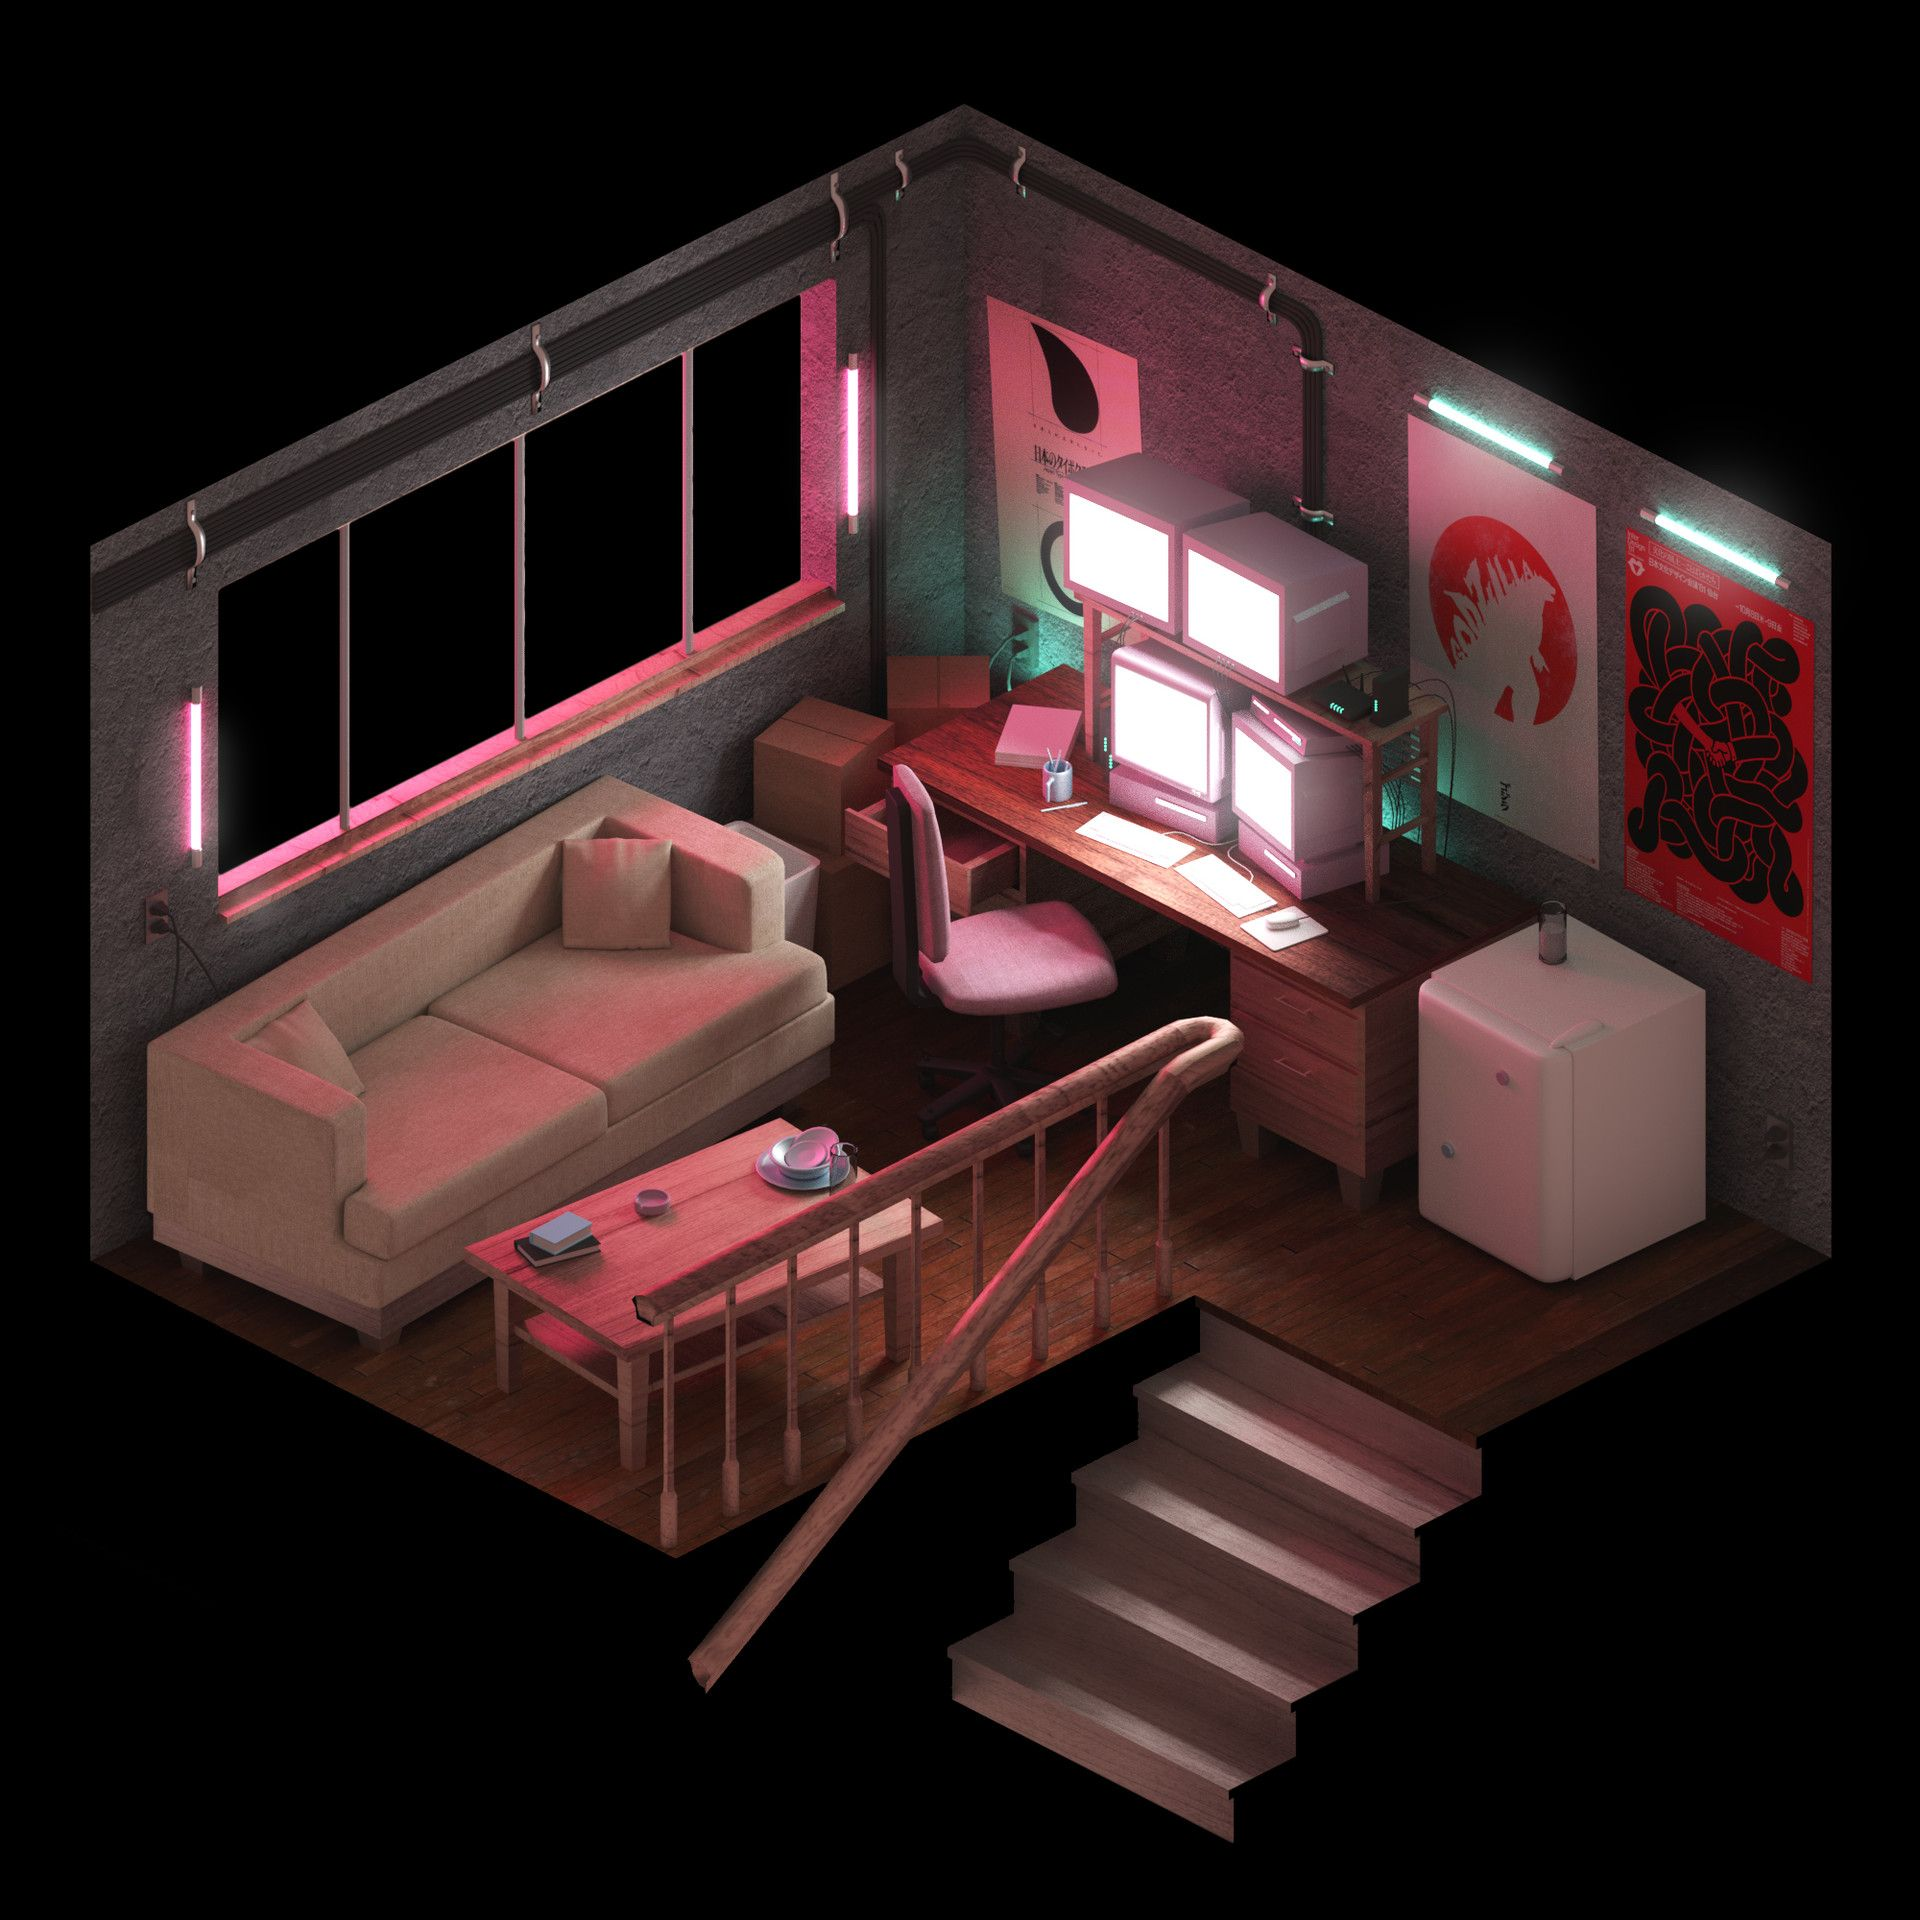 Virtual 3d Home Design Game: Isometric Environments, Ethan